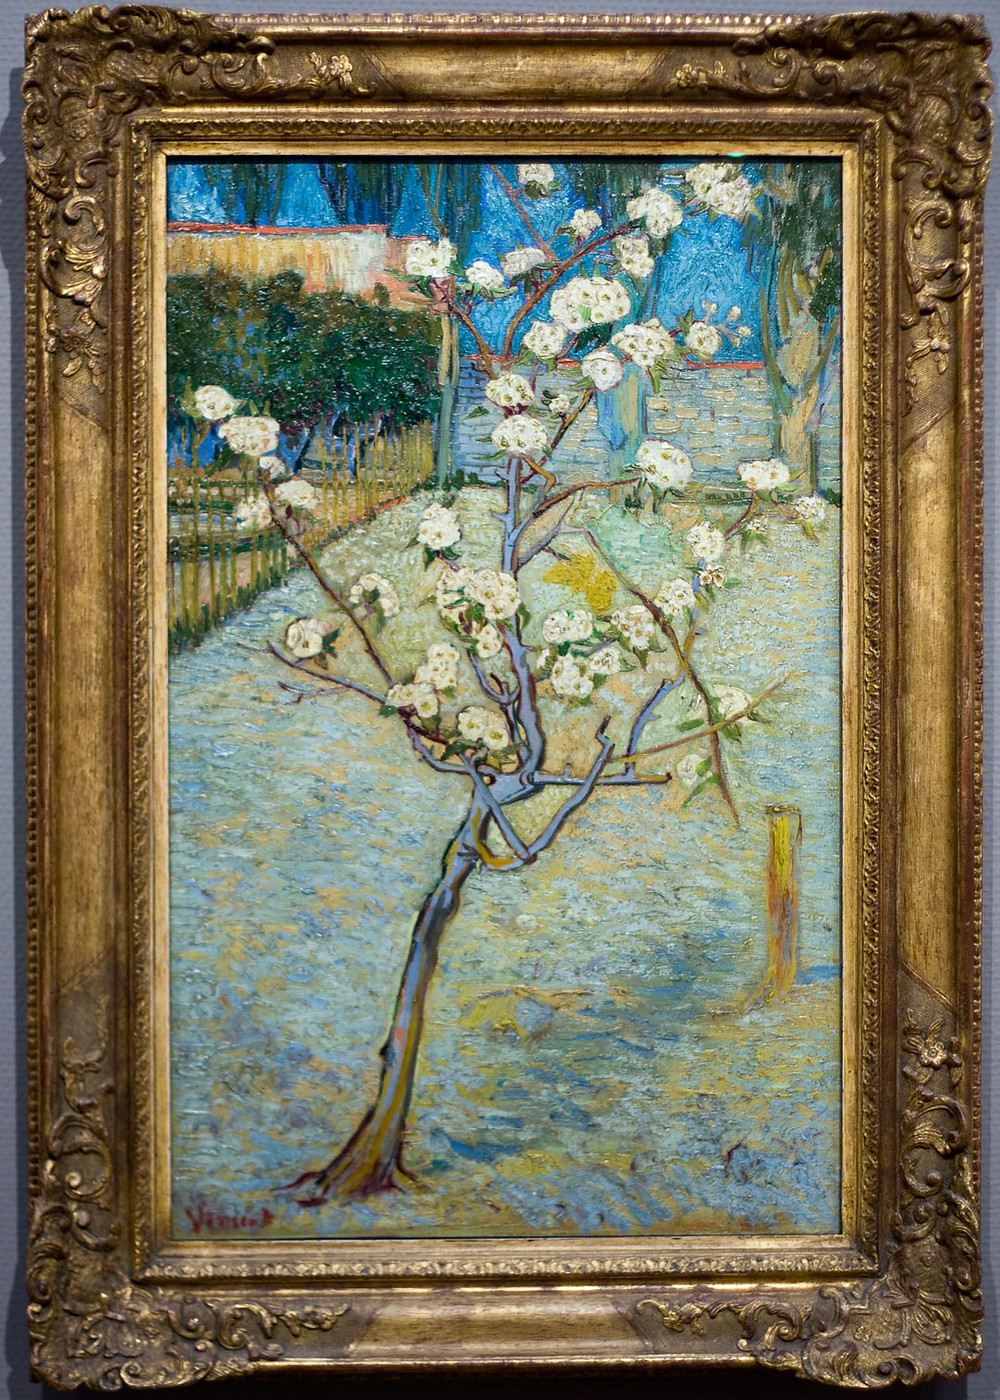 Small pear tree in blossom - Van Gogh Museum Amsterdam art collection